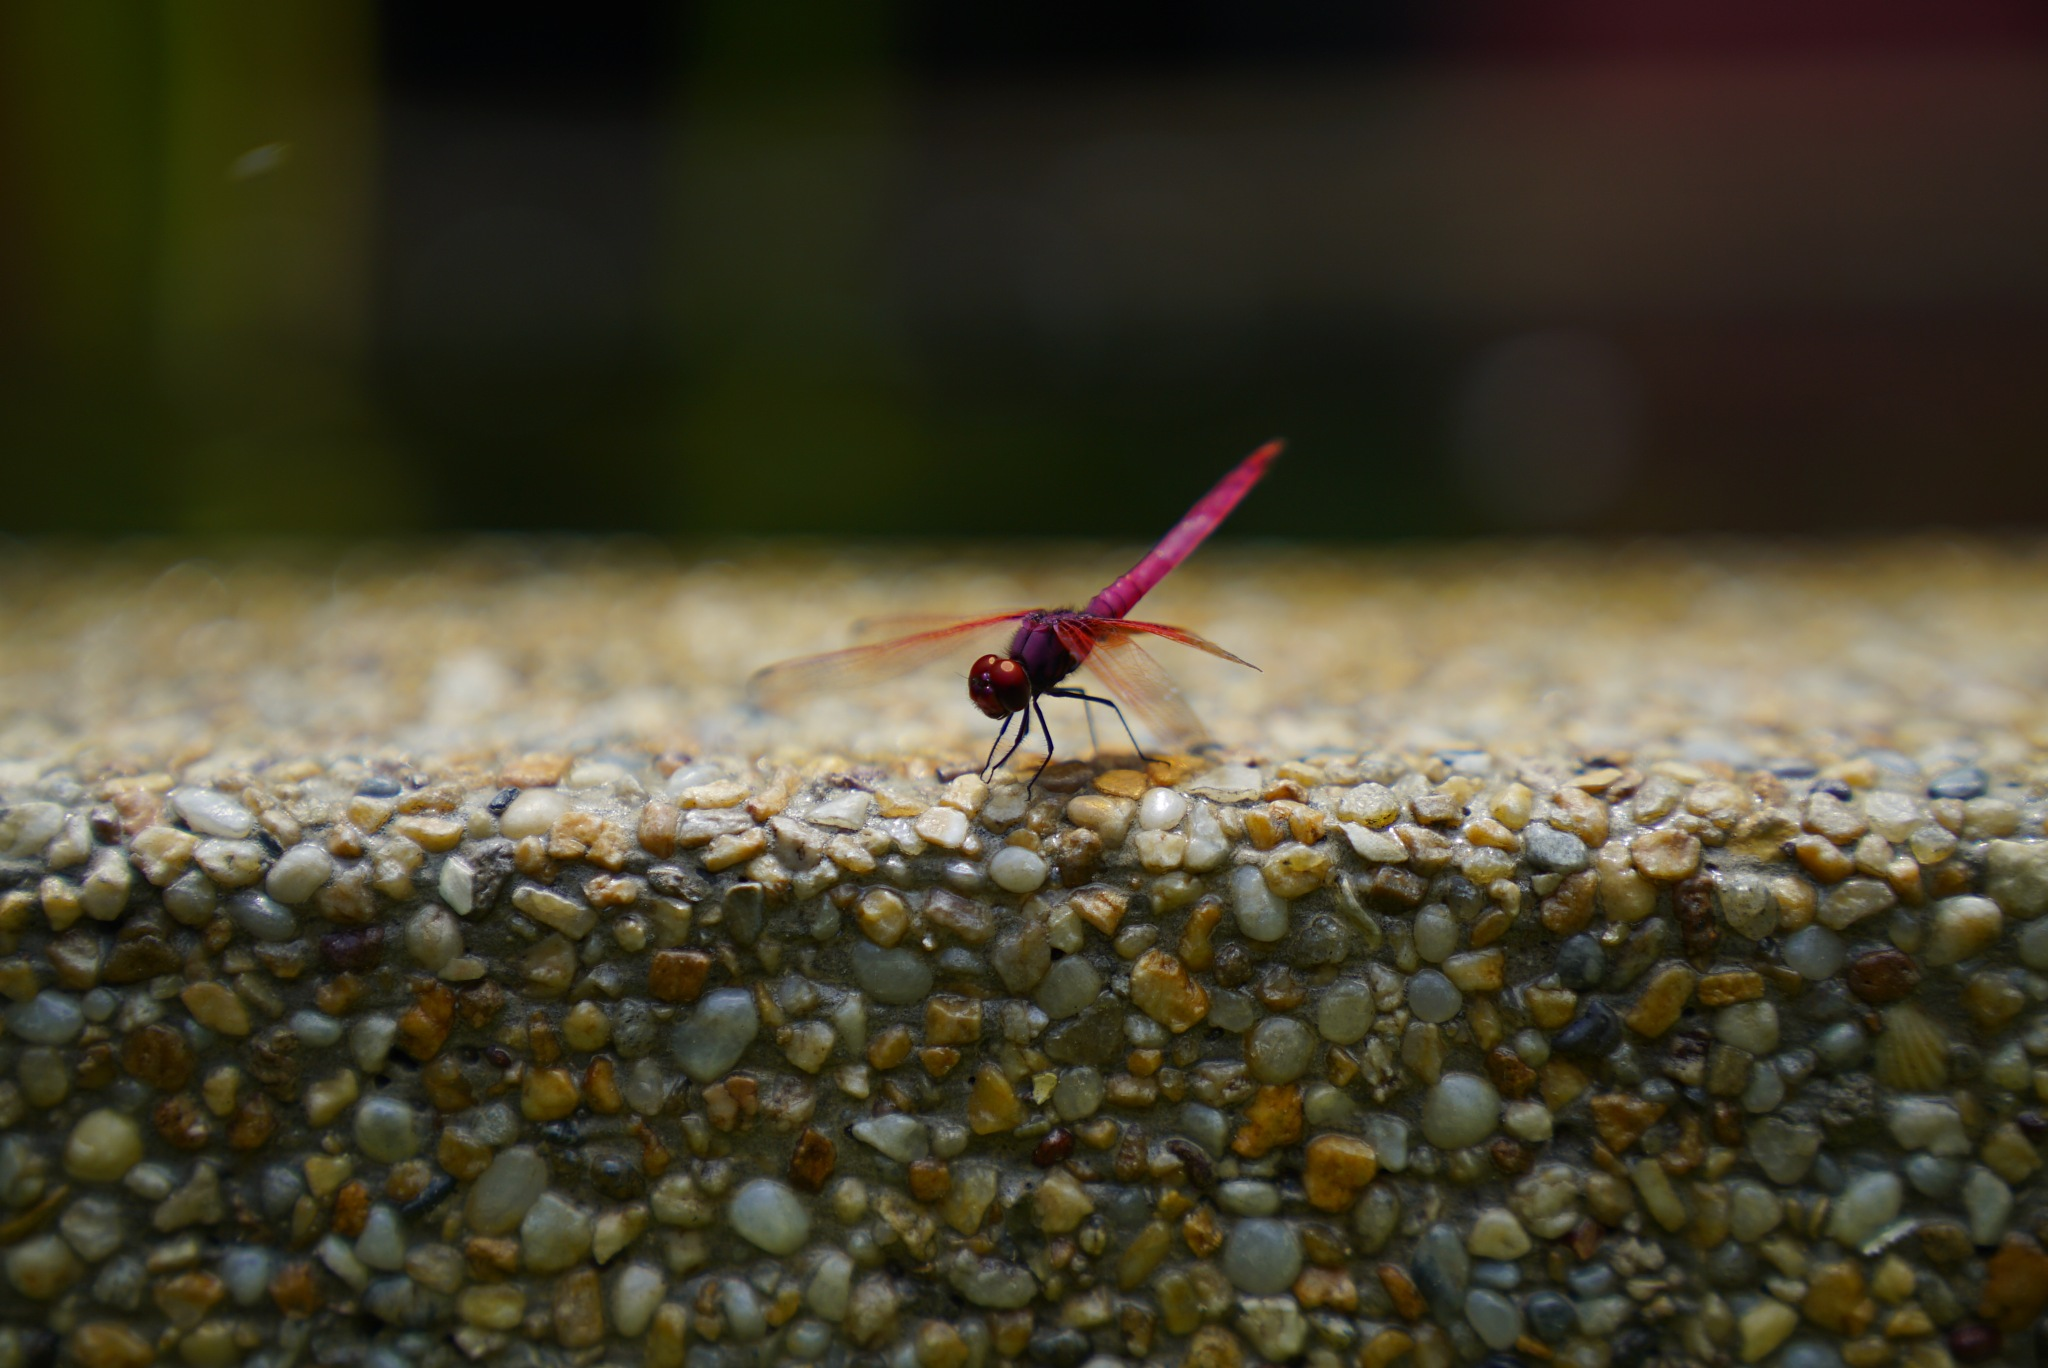 dragonfly 3 by jemuel wong